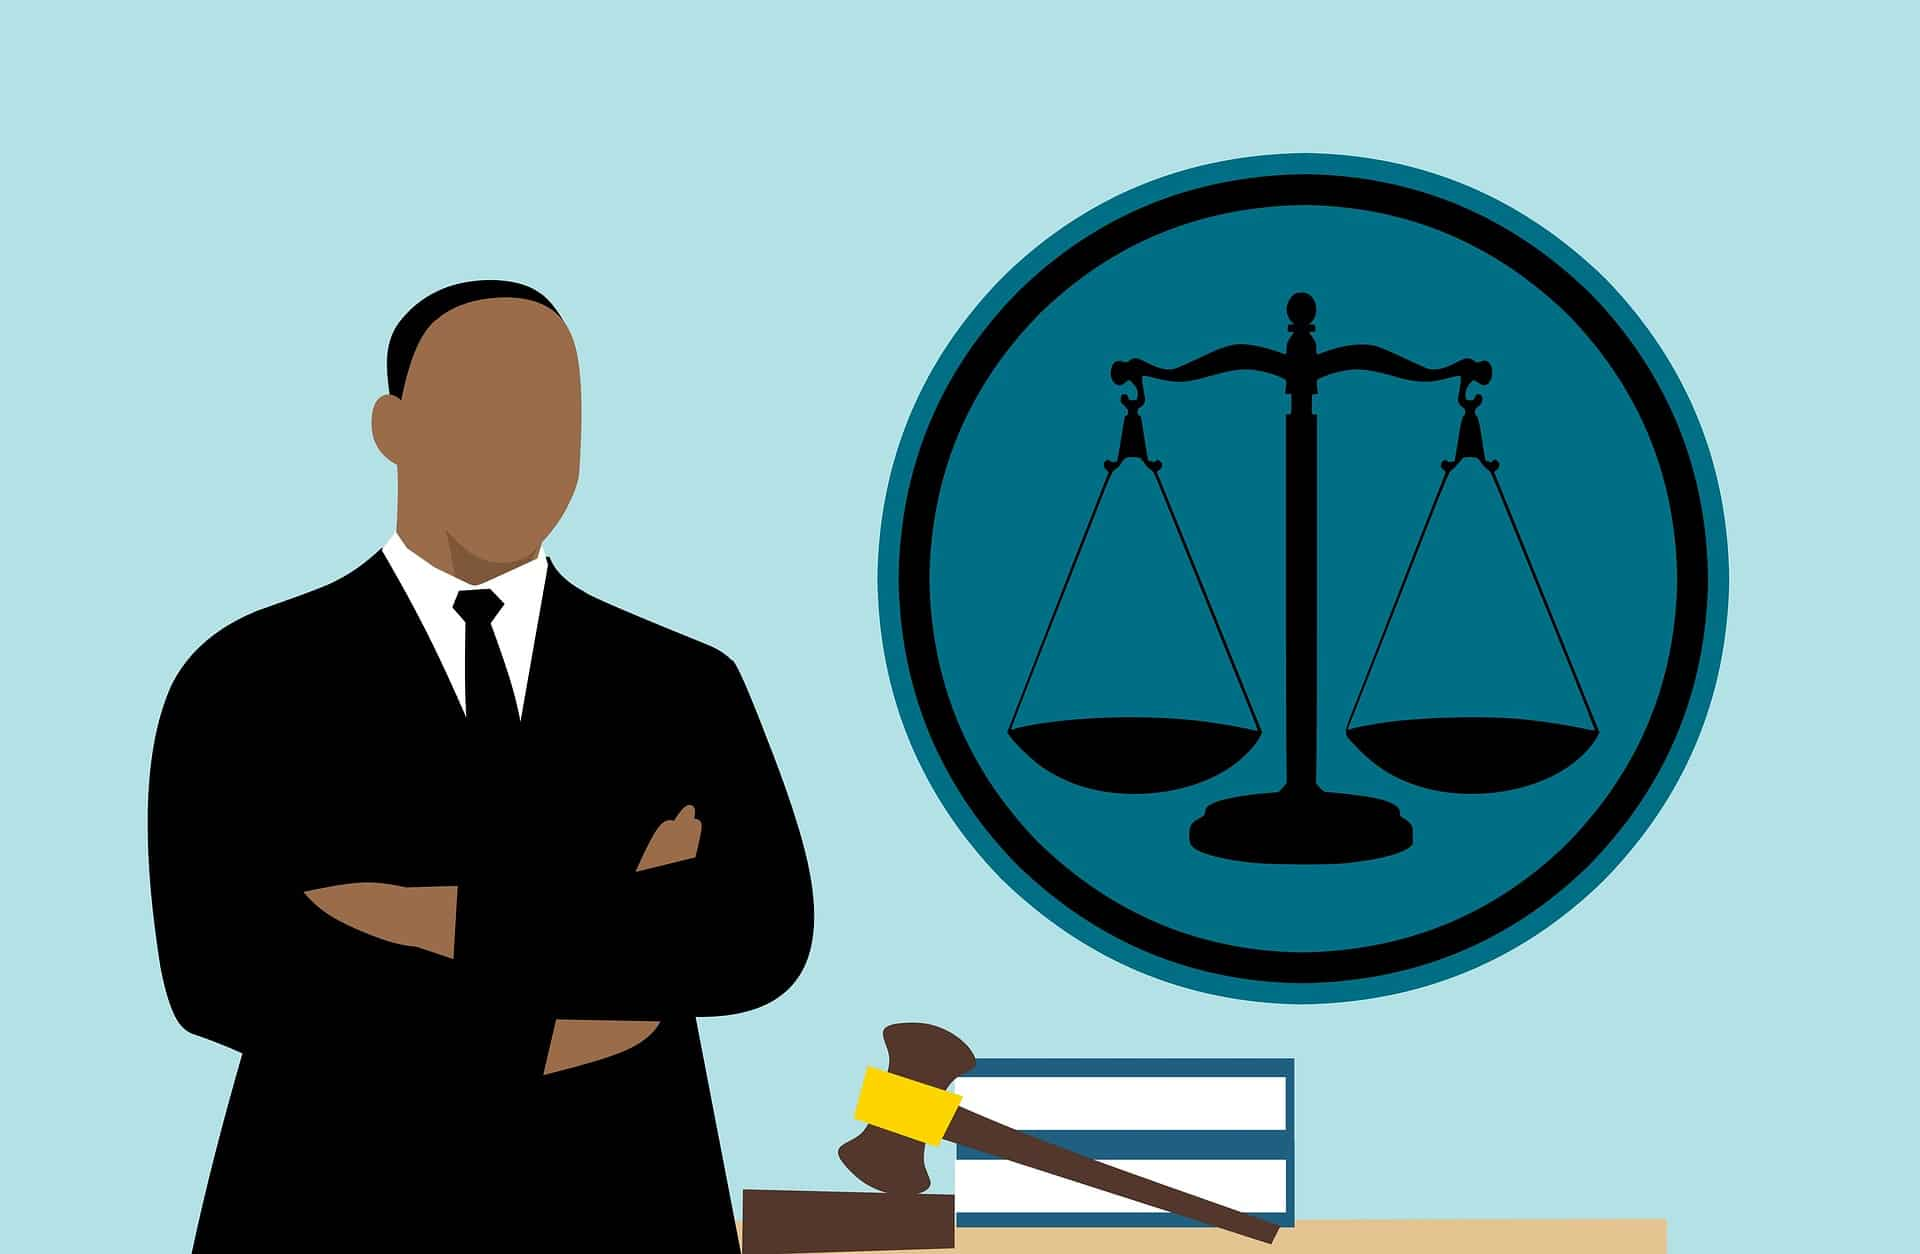 Criminal Defense Attorney in Phoenix - illustration of man next to gavel and books, with an icon of scales